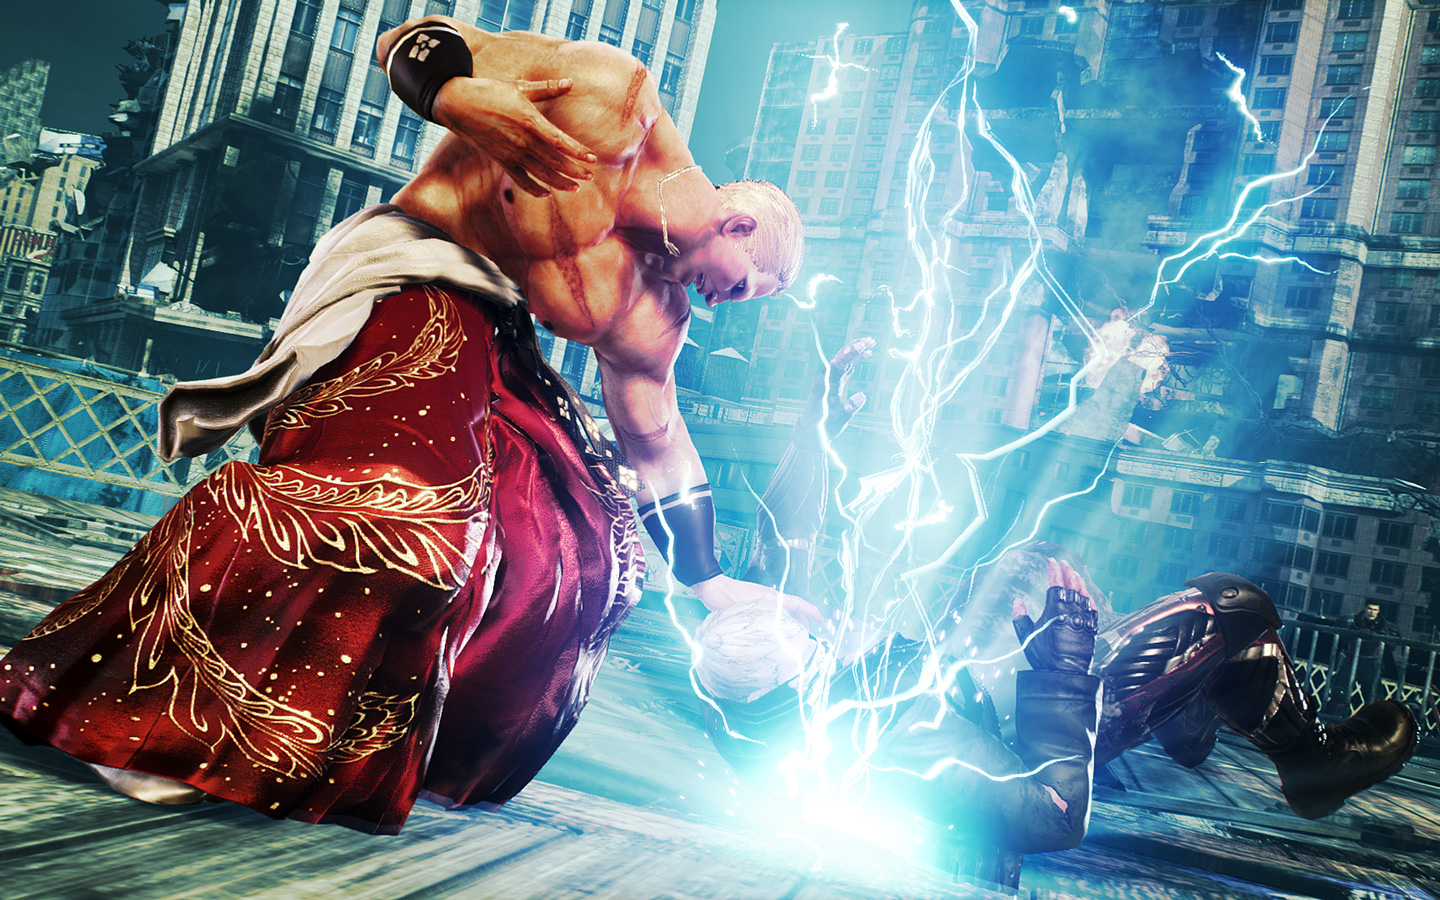 Free Tekken 7 Wallpaper in 1440x900